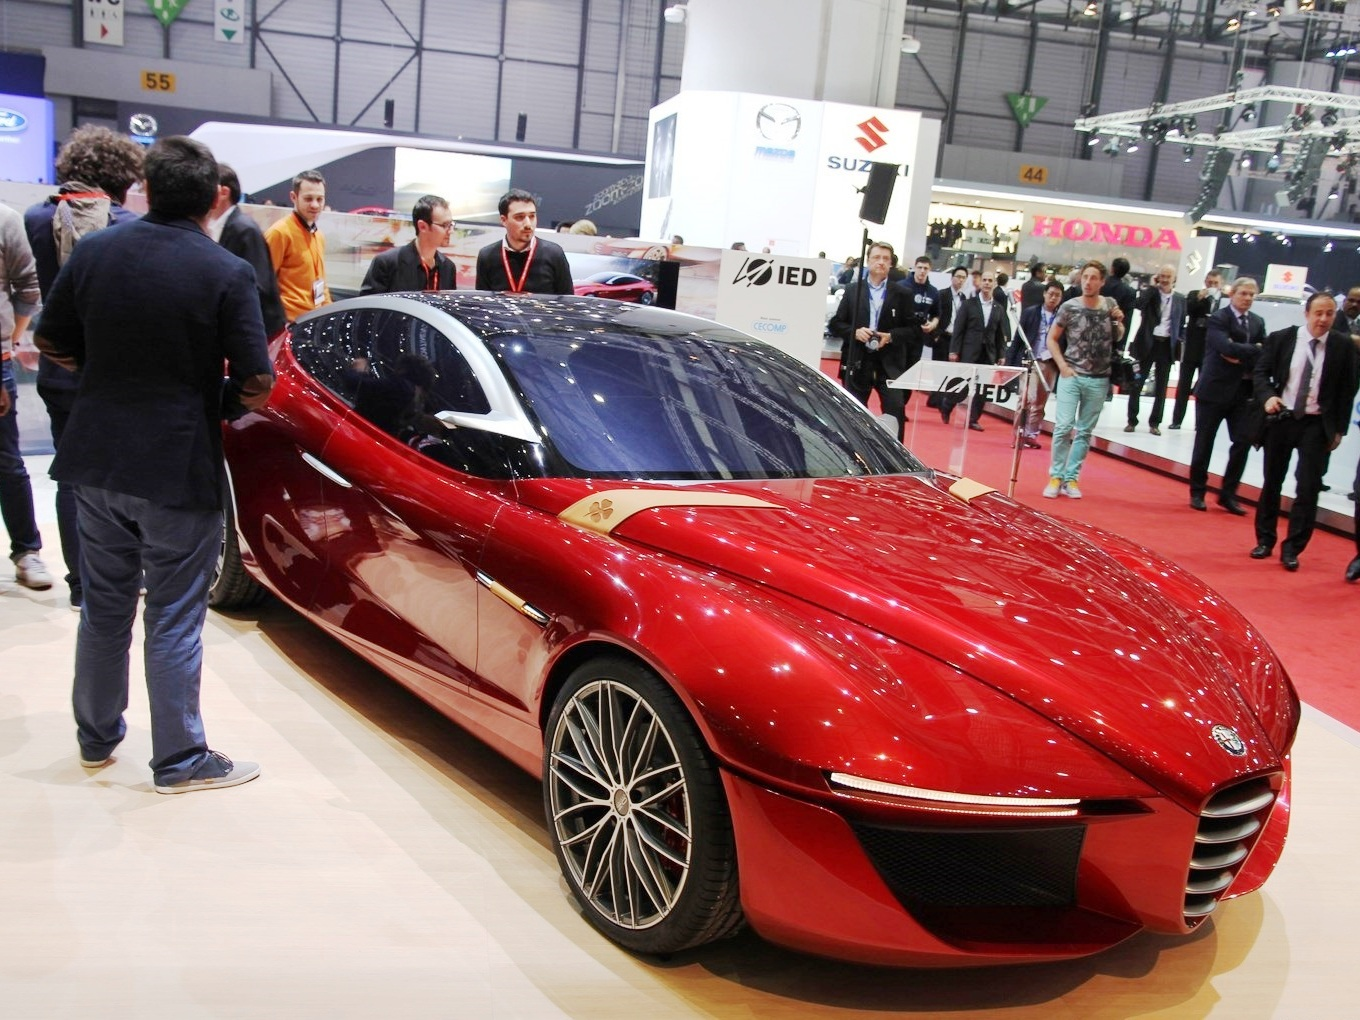 2013 Alfa Romeo Gloria Concept At Geneva Motor Show (Photo 2 of 6)